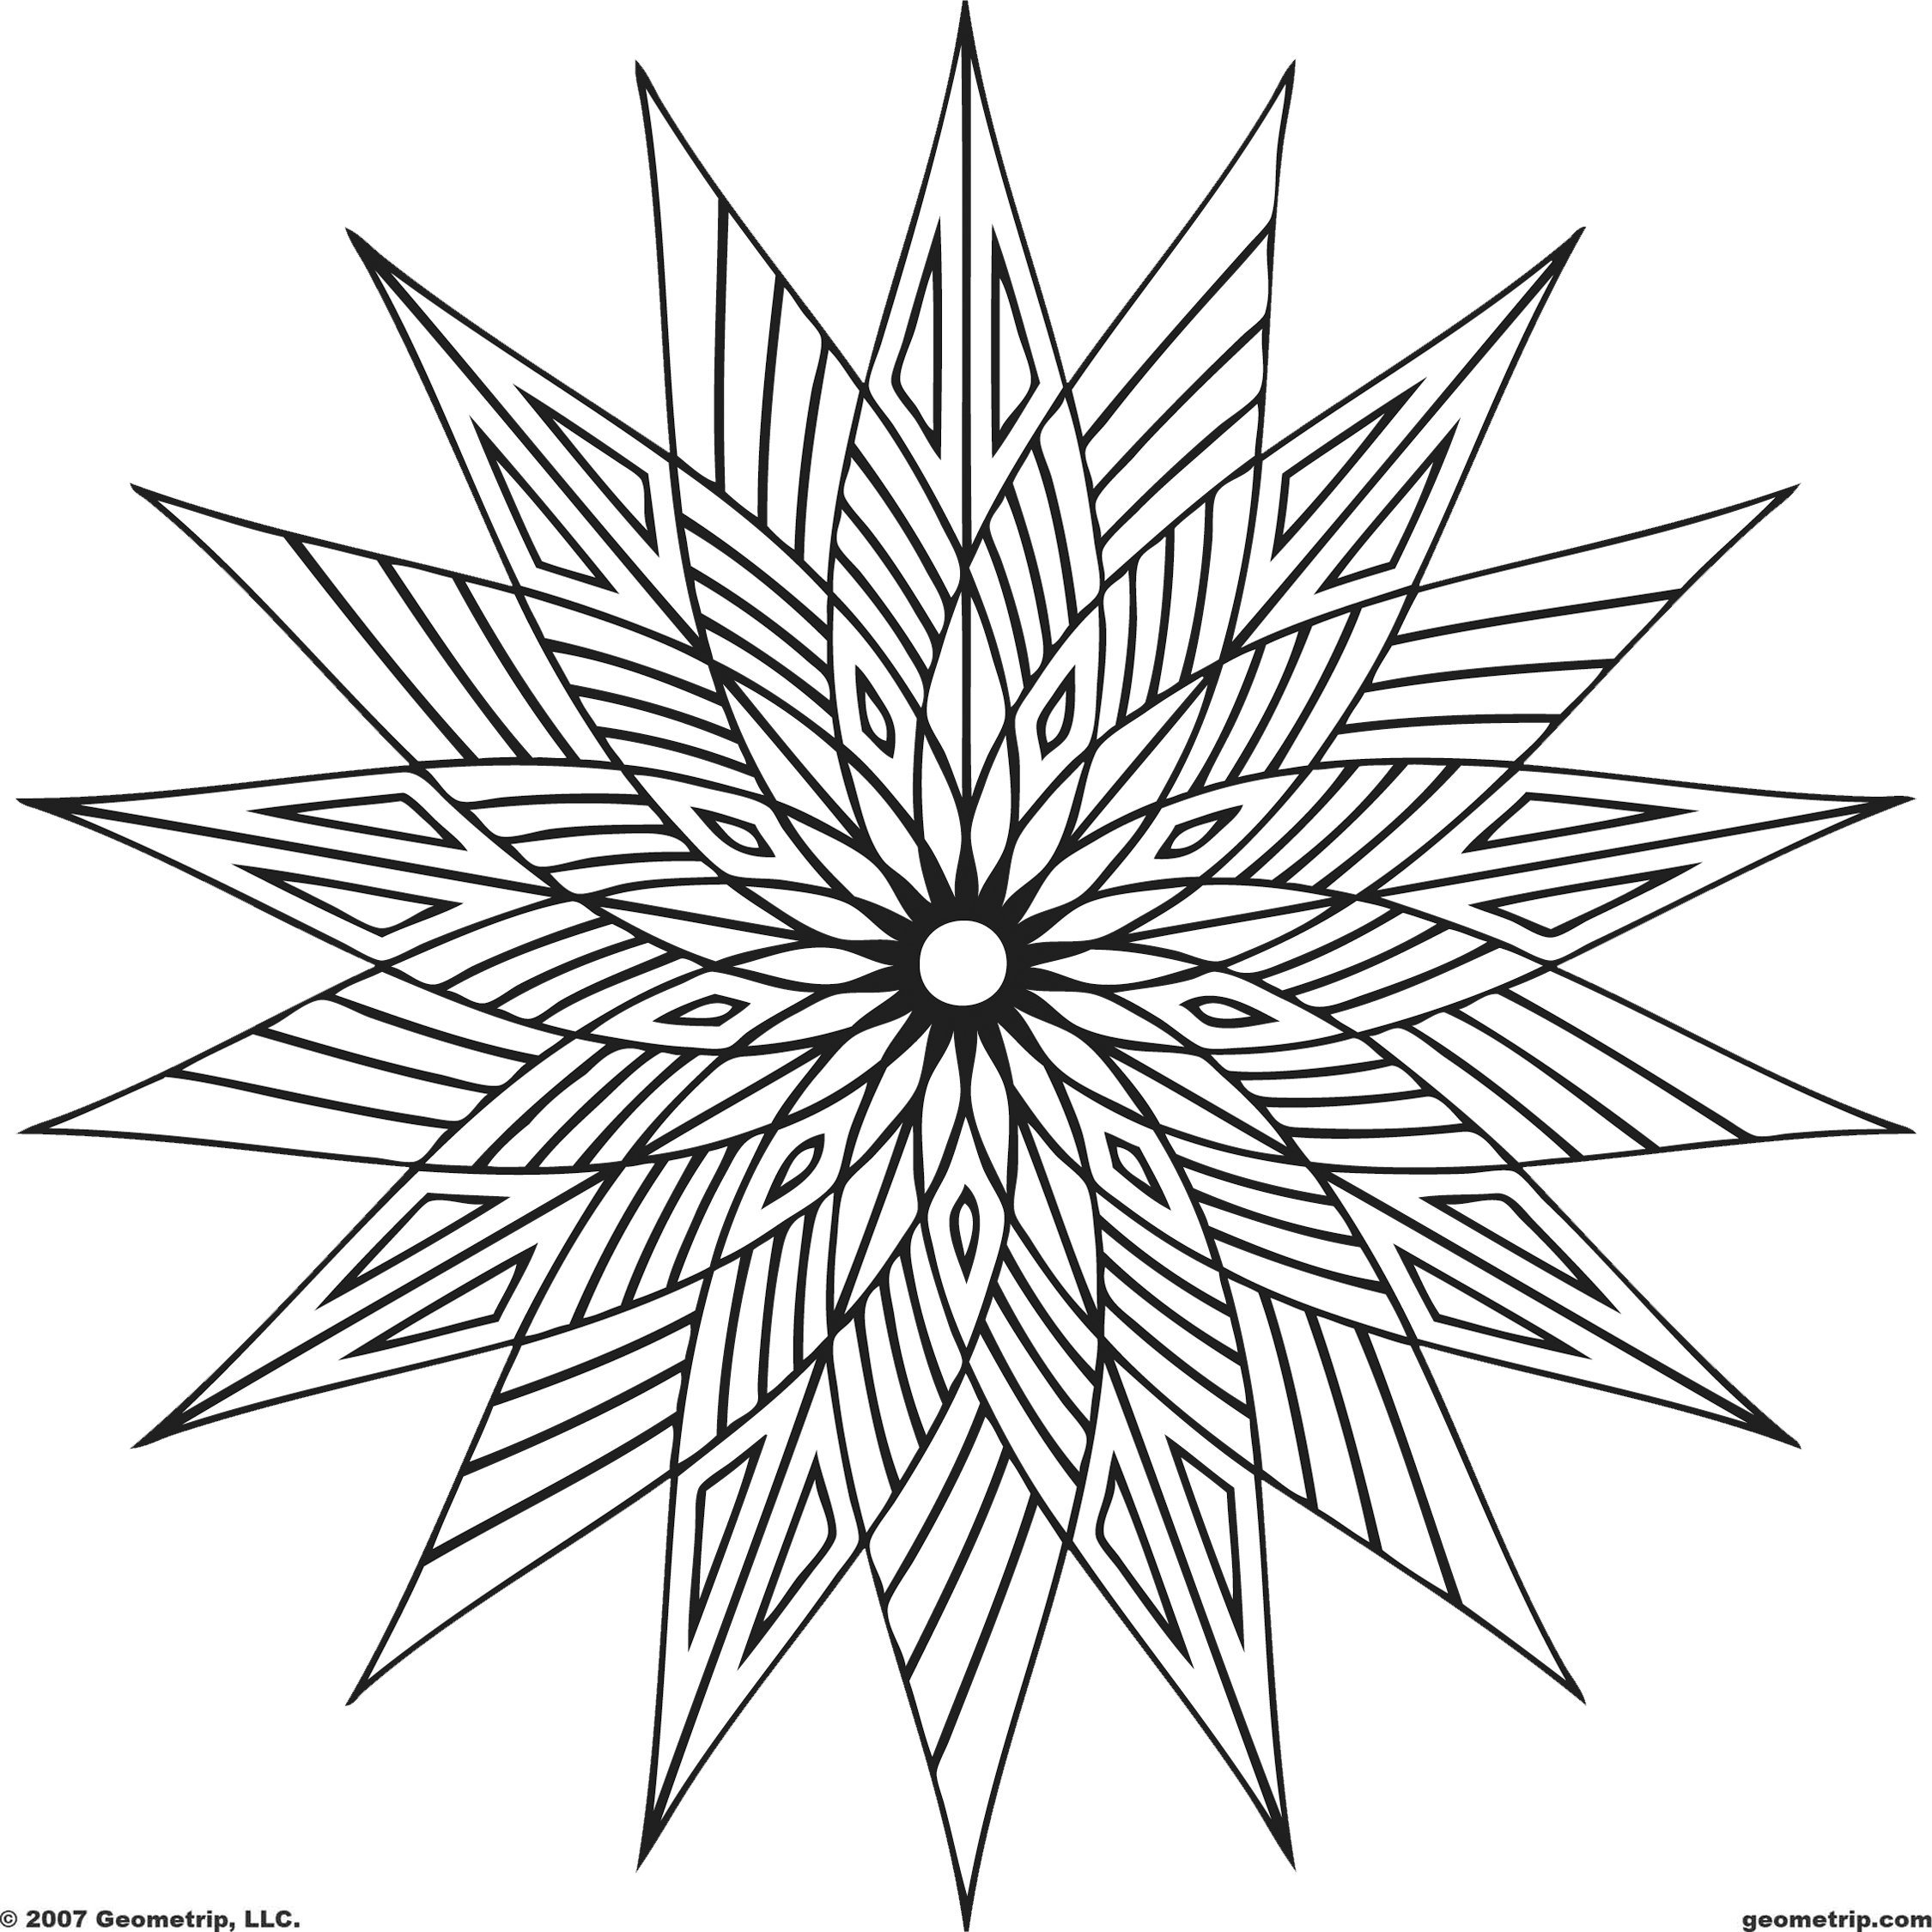 printable coloring designs 16 cool coloring pages of designs images cool geometric designs printable coloring